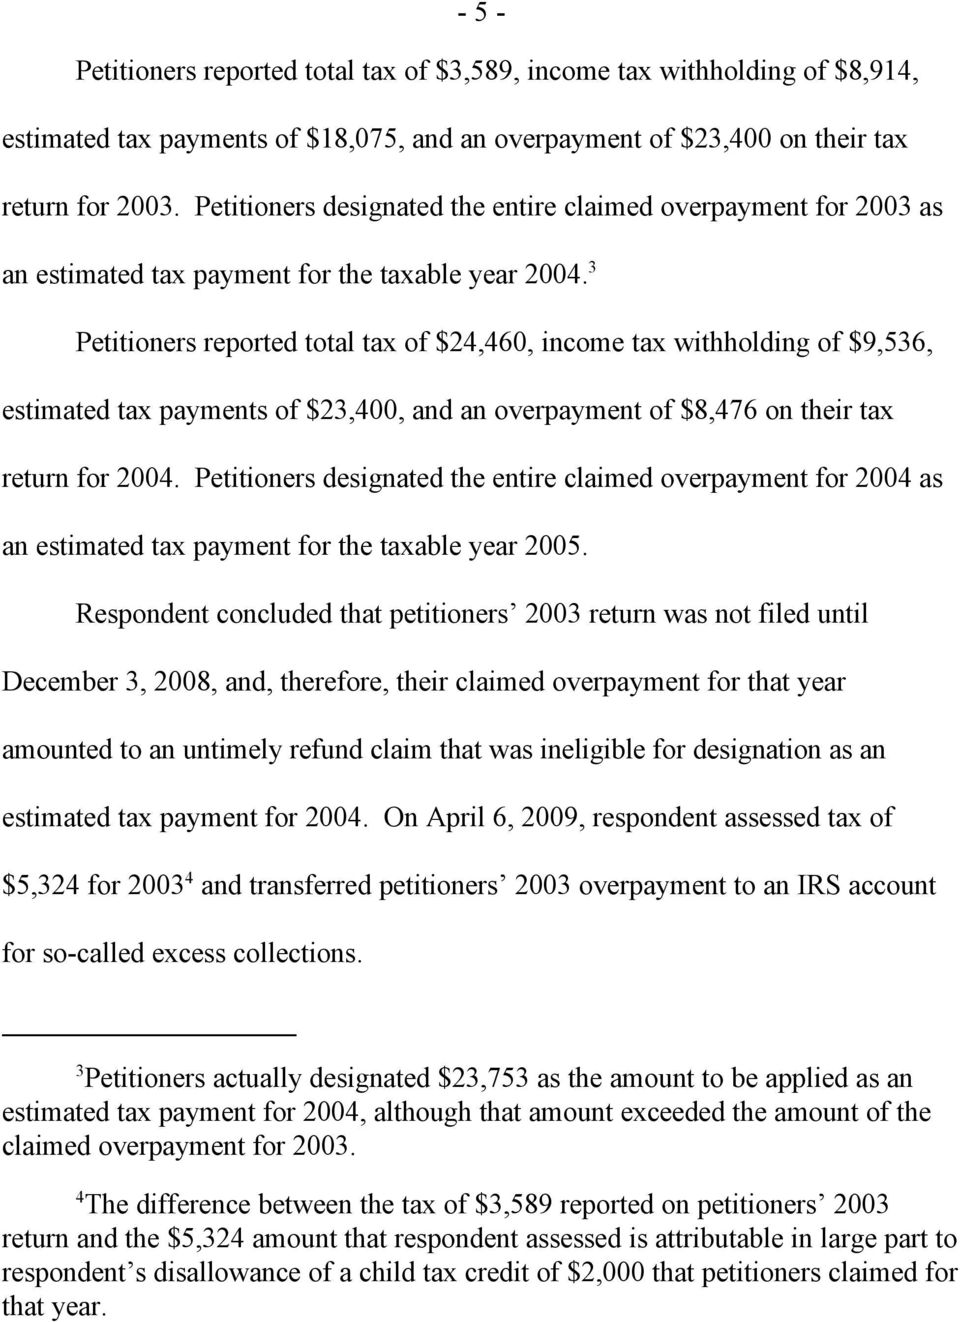 3 Petitioners reported total tax of $24,460, income tax withholding of $9,536, estimated tax payments of $23,400, and an overpayment of $8,476 on their tax return for 2004.